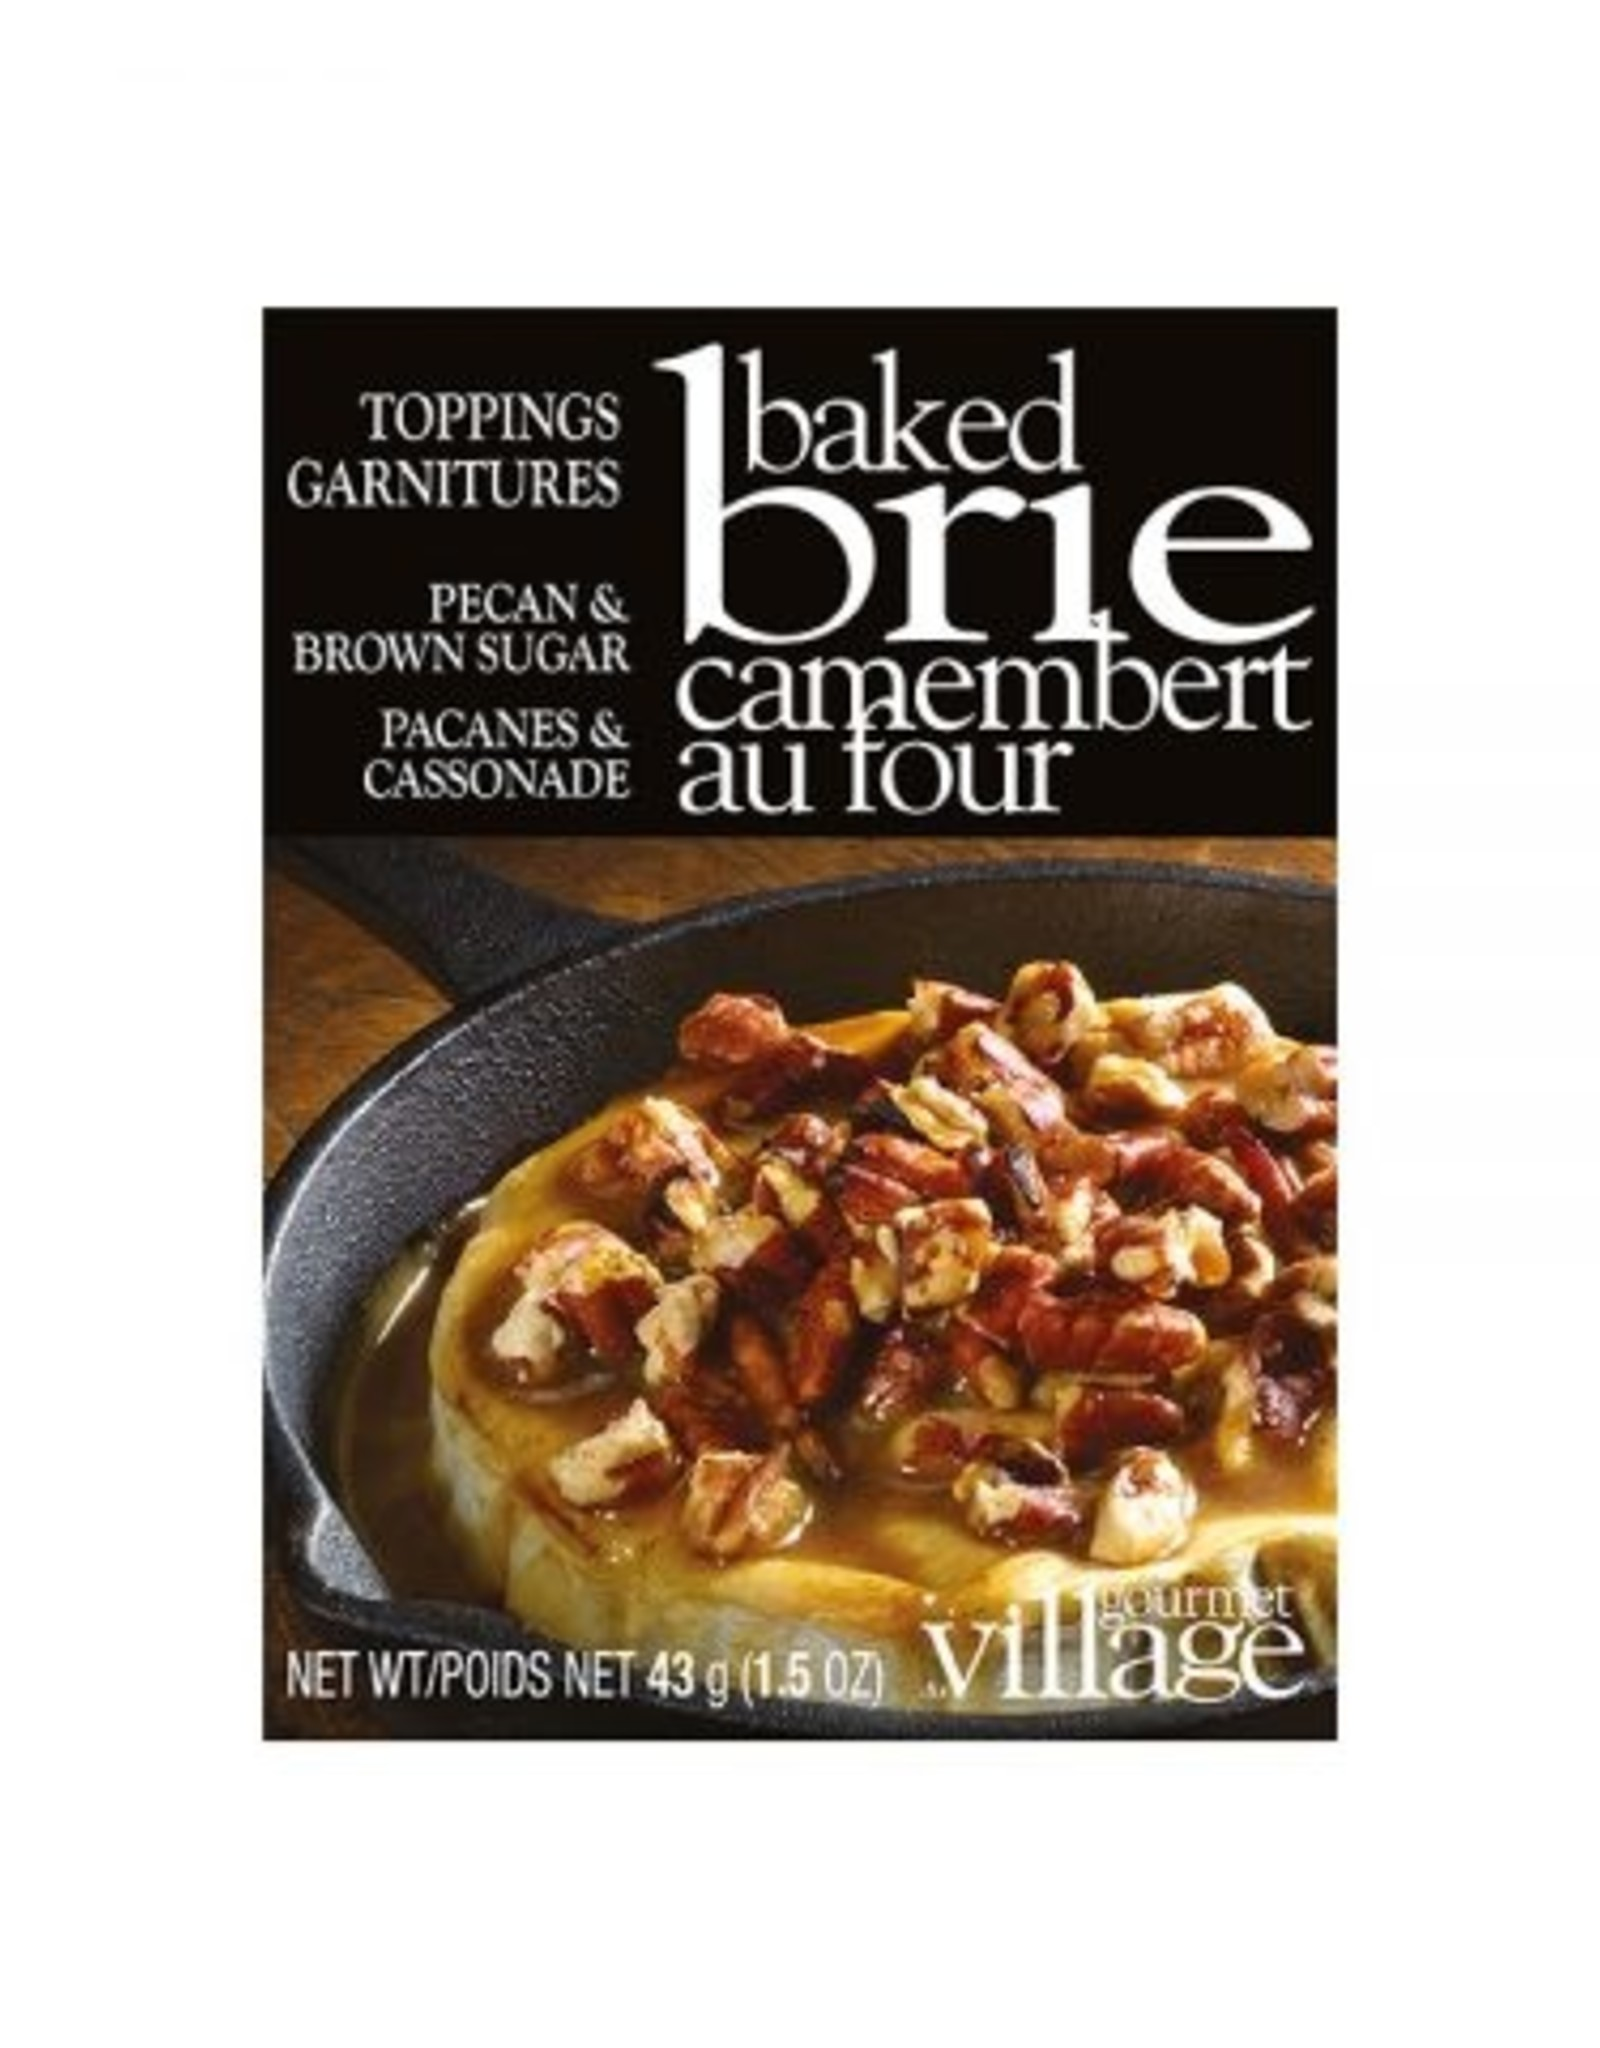 GARNITURES POUR BRIE AU FOUR PACANES & CASSONADE